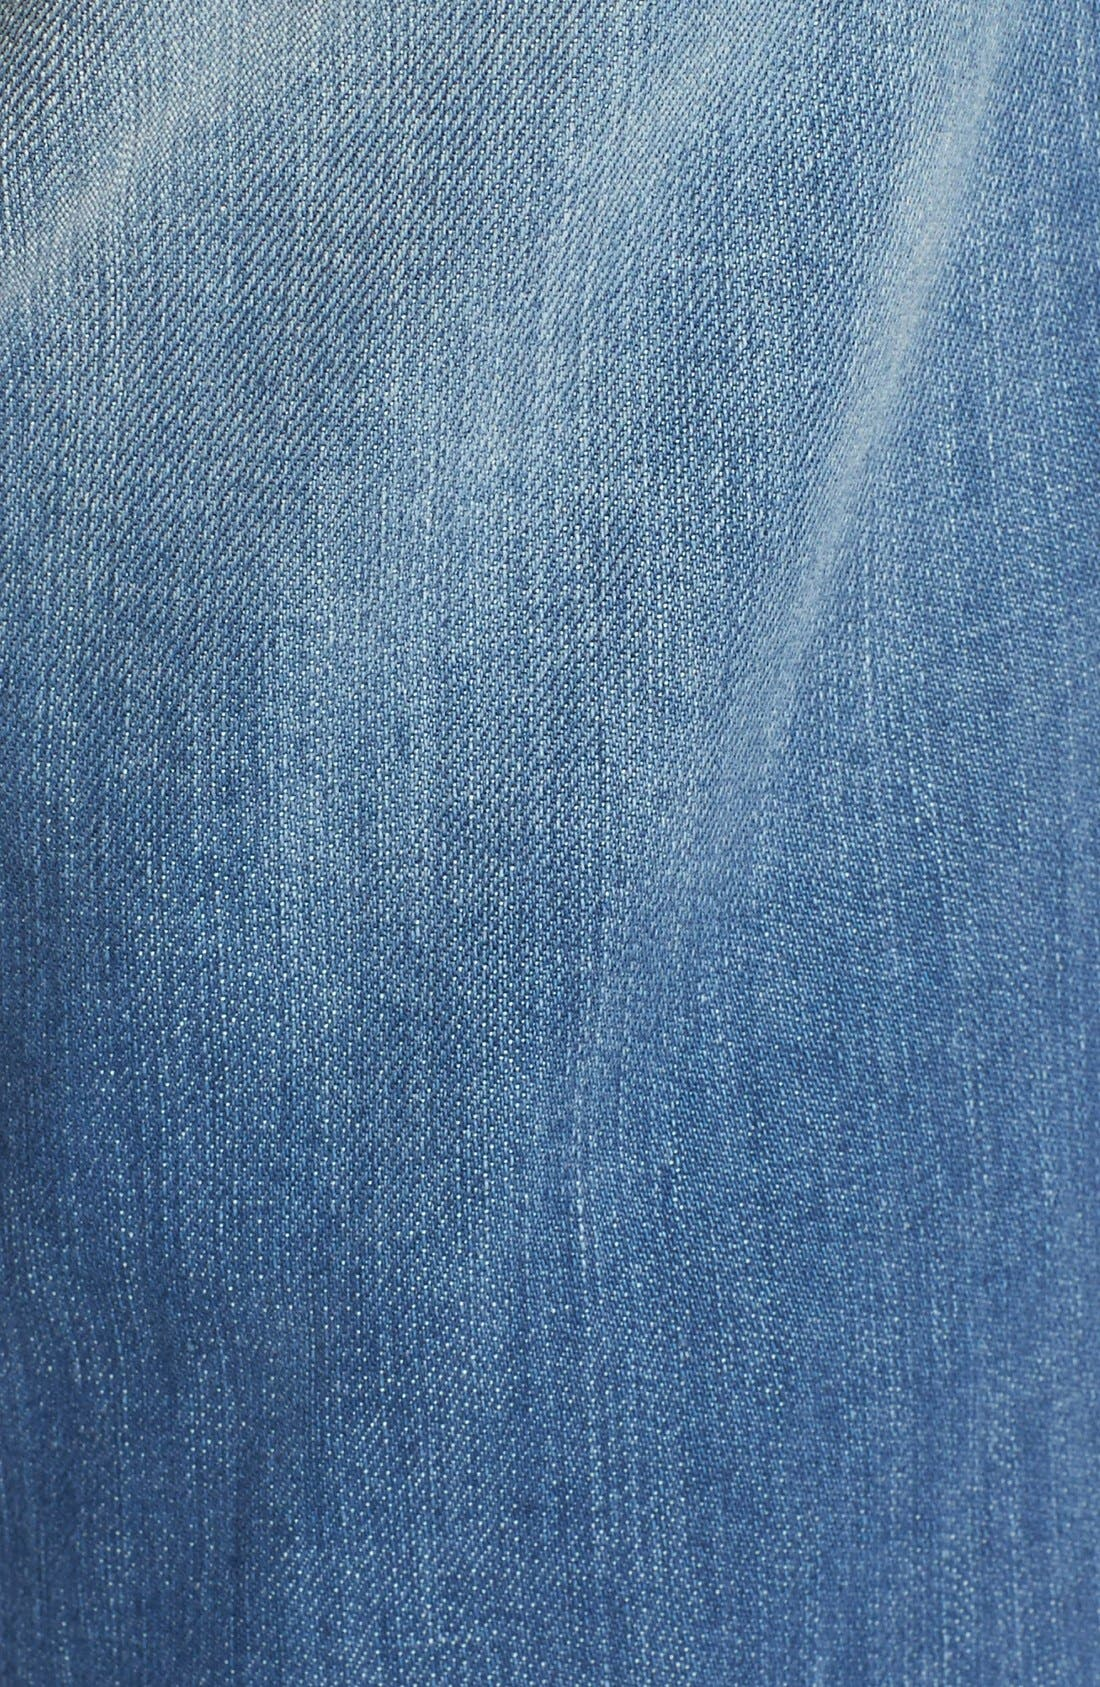 Alternate Image 5  - KUT from the Kloth 'Catherine' Distressed Stretch Boyfriend Jeans (Smile)